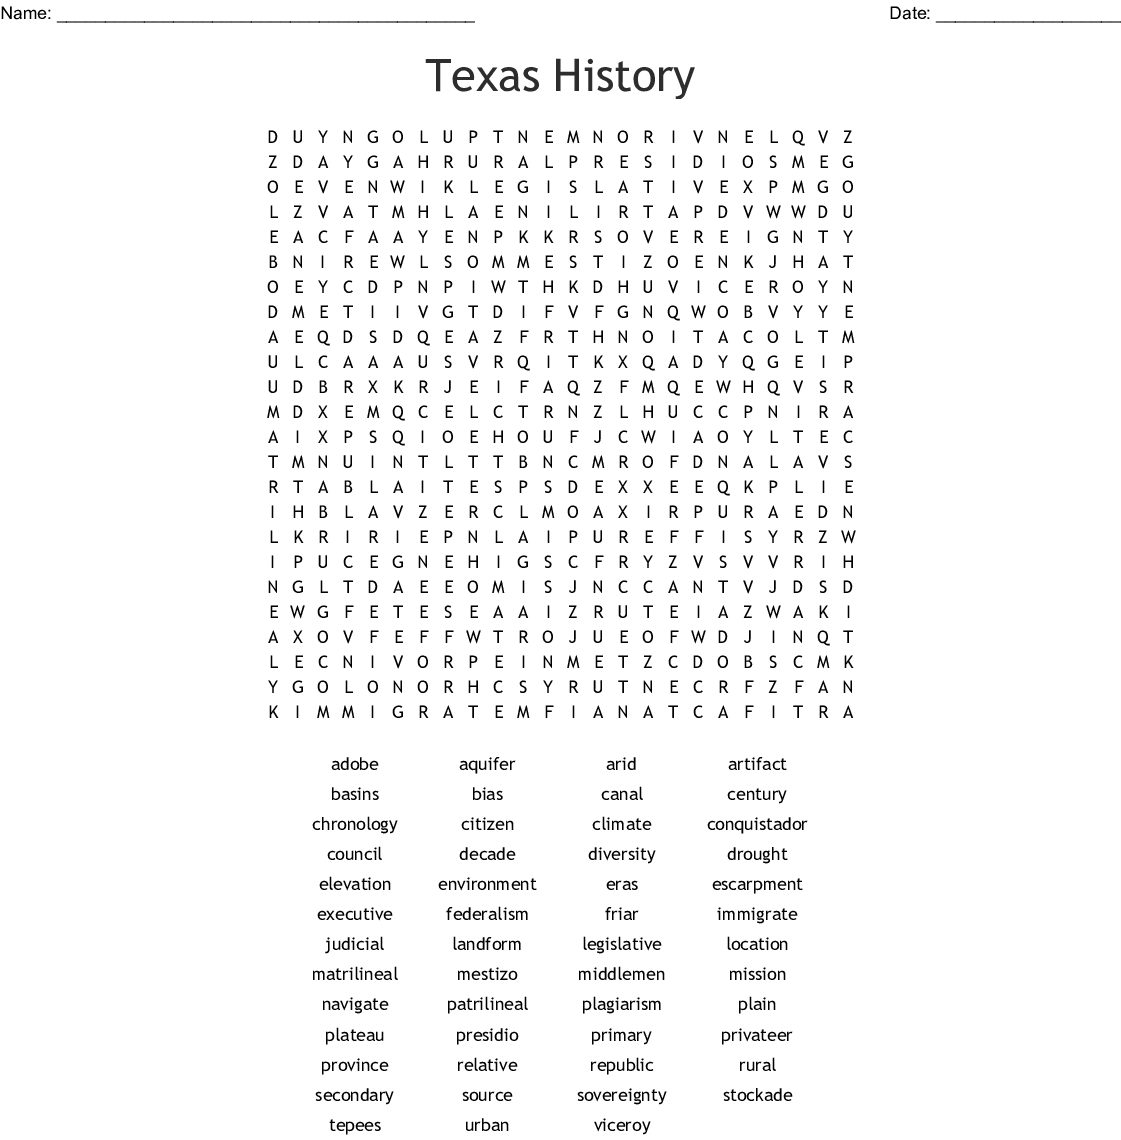 Texas History Word Search - Wordmint